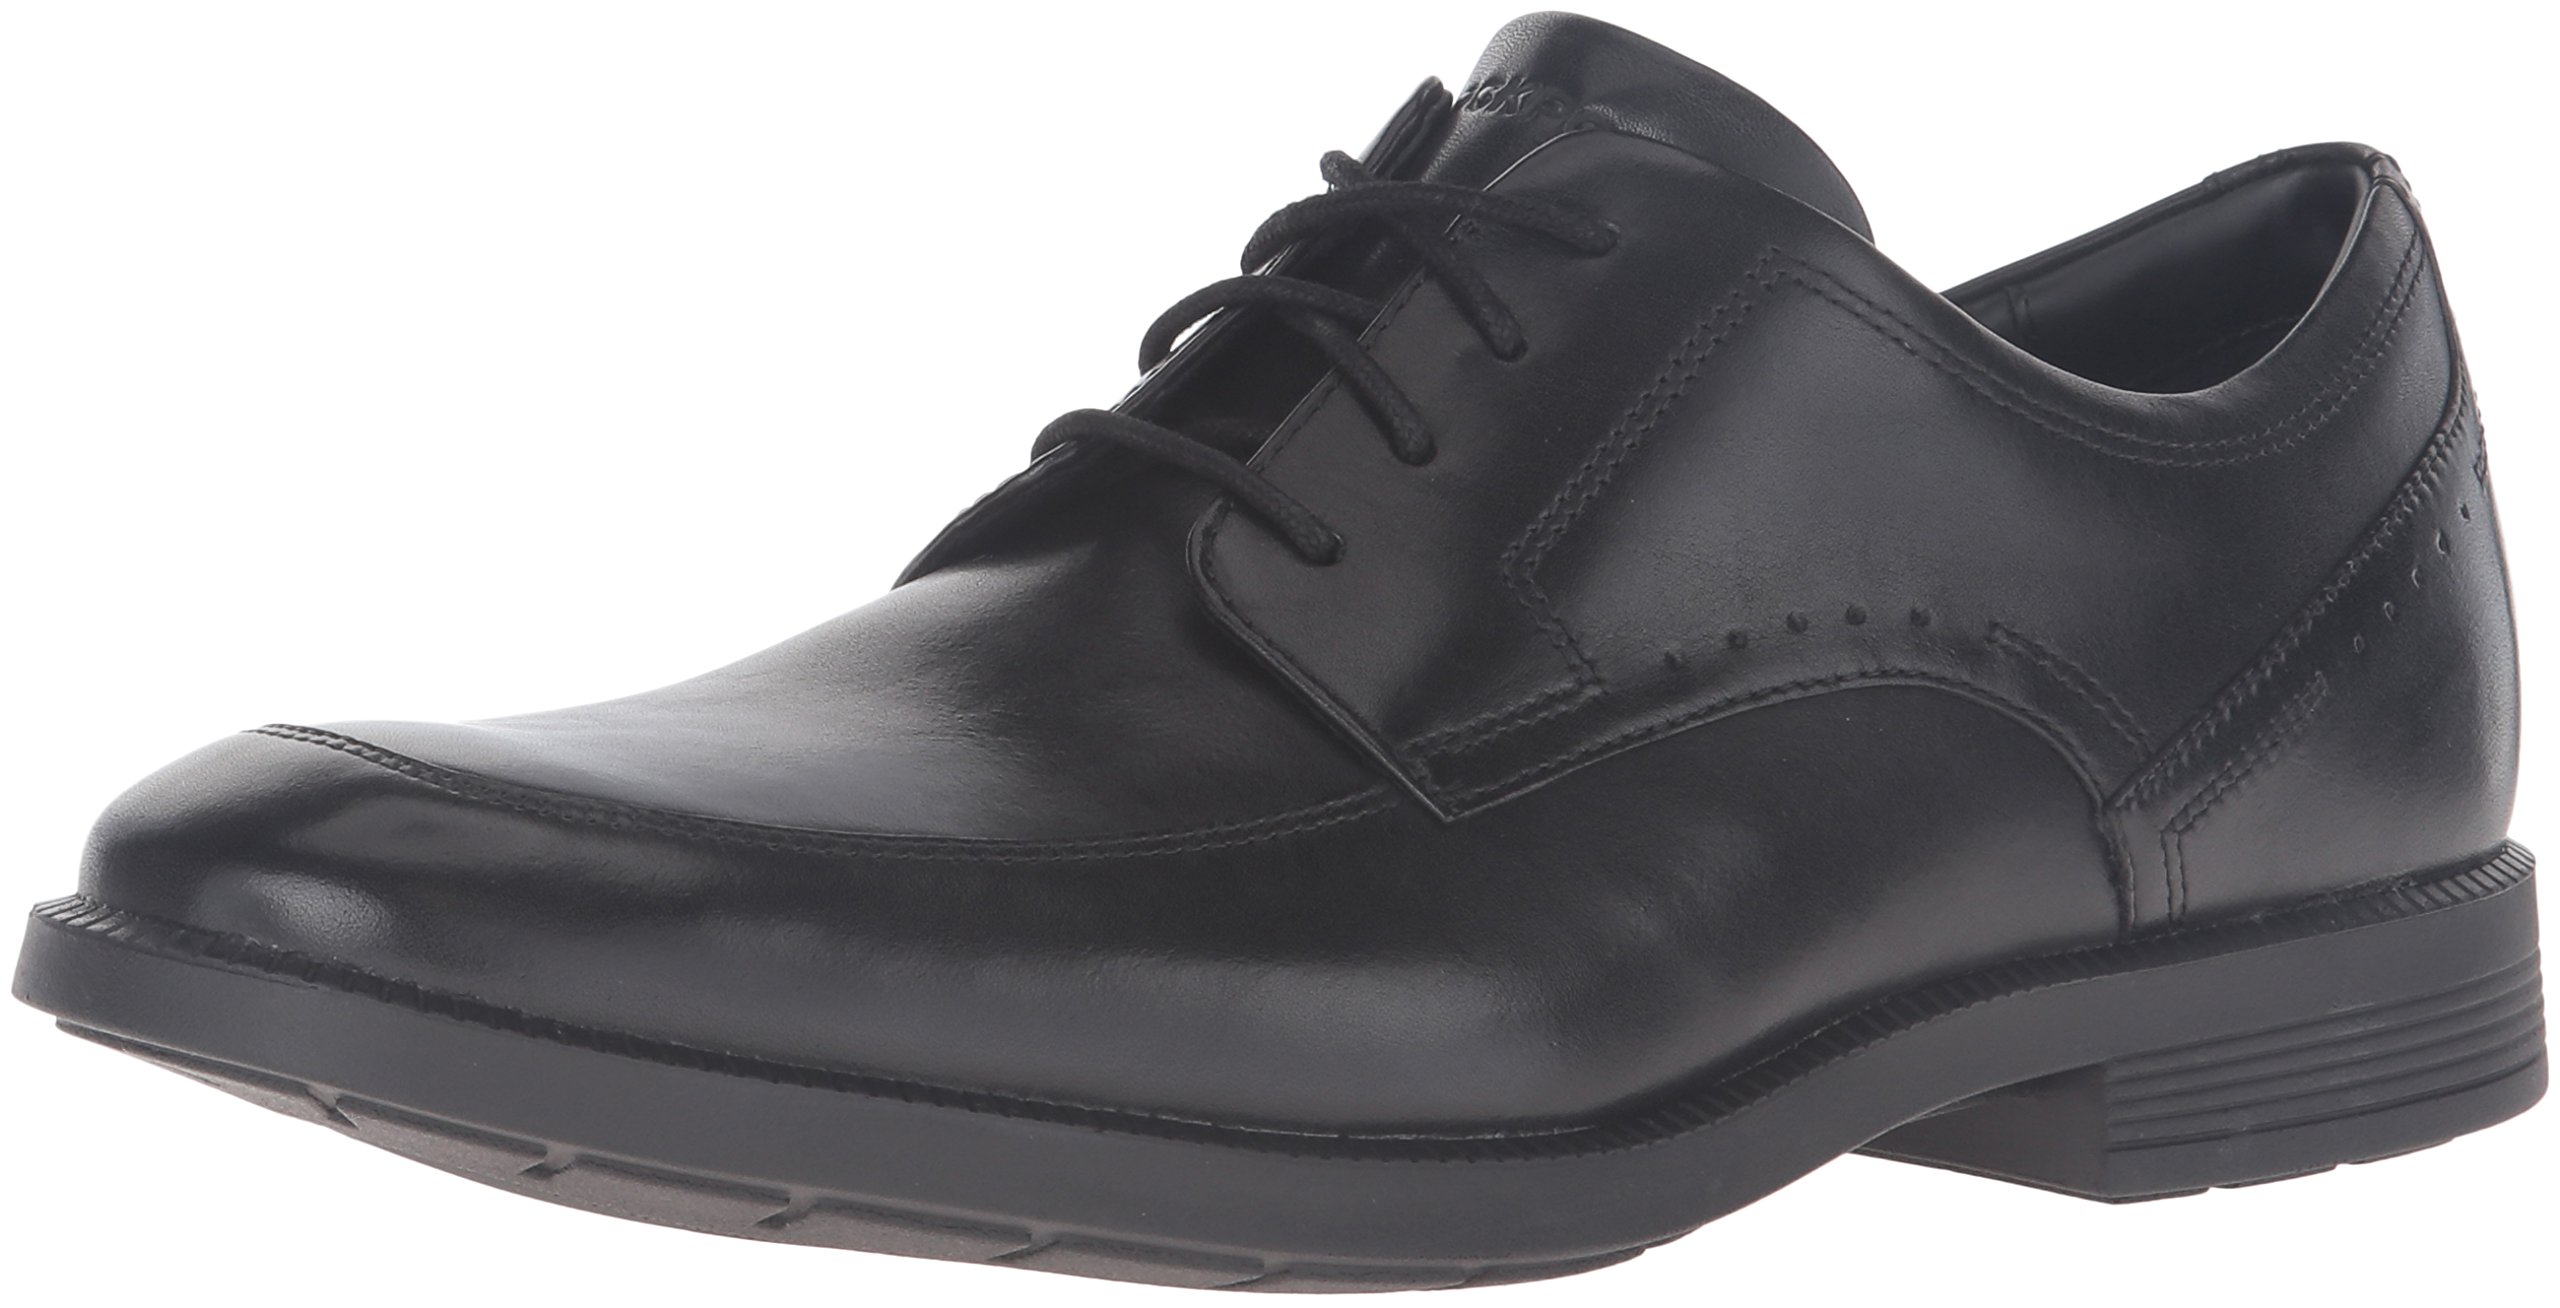 Rockport Men's Dressports Business Apron Toe Oxford, Black, 7.5 Medium US by Rockport